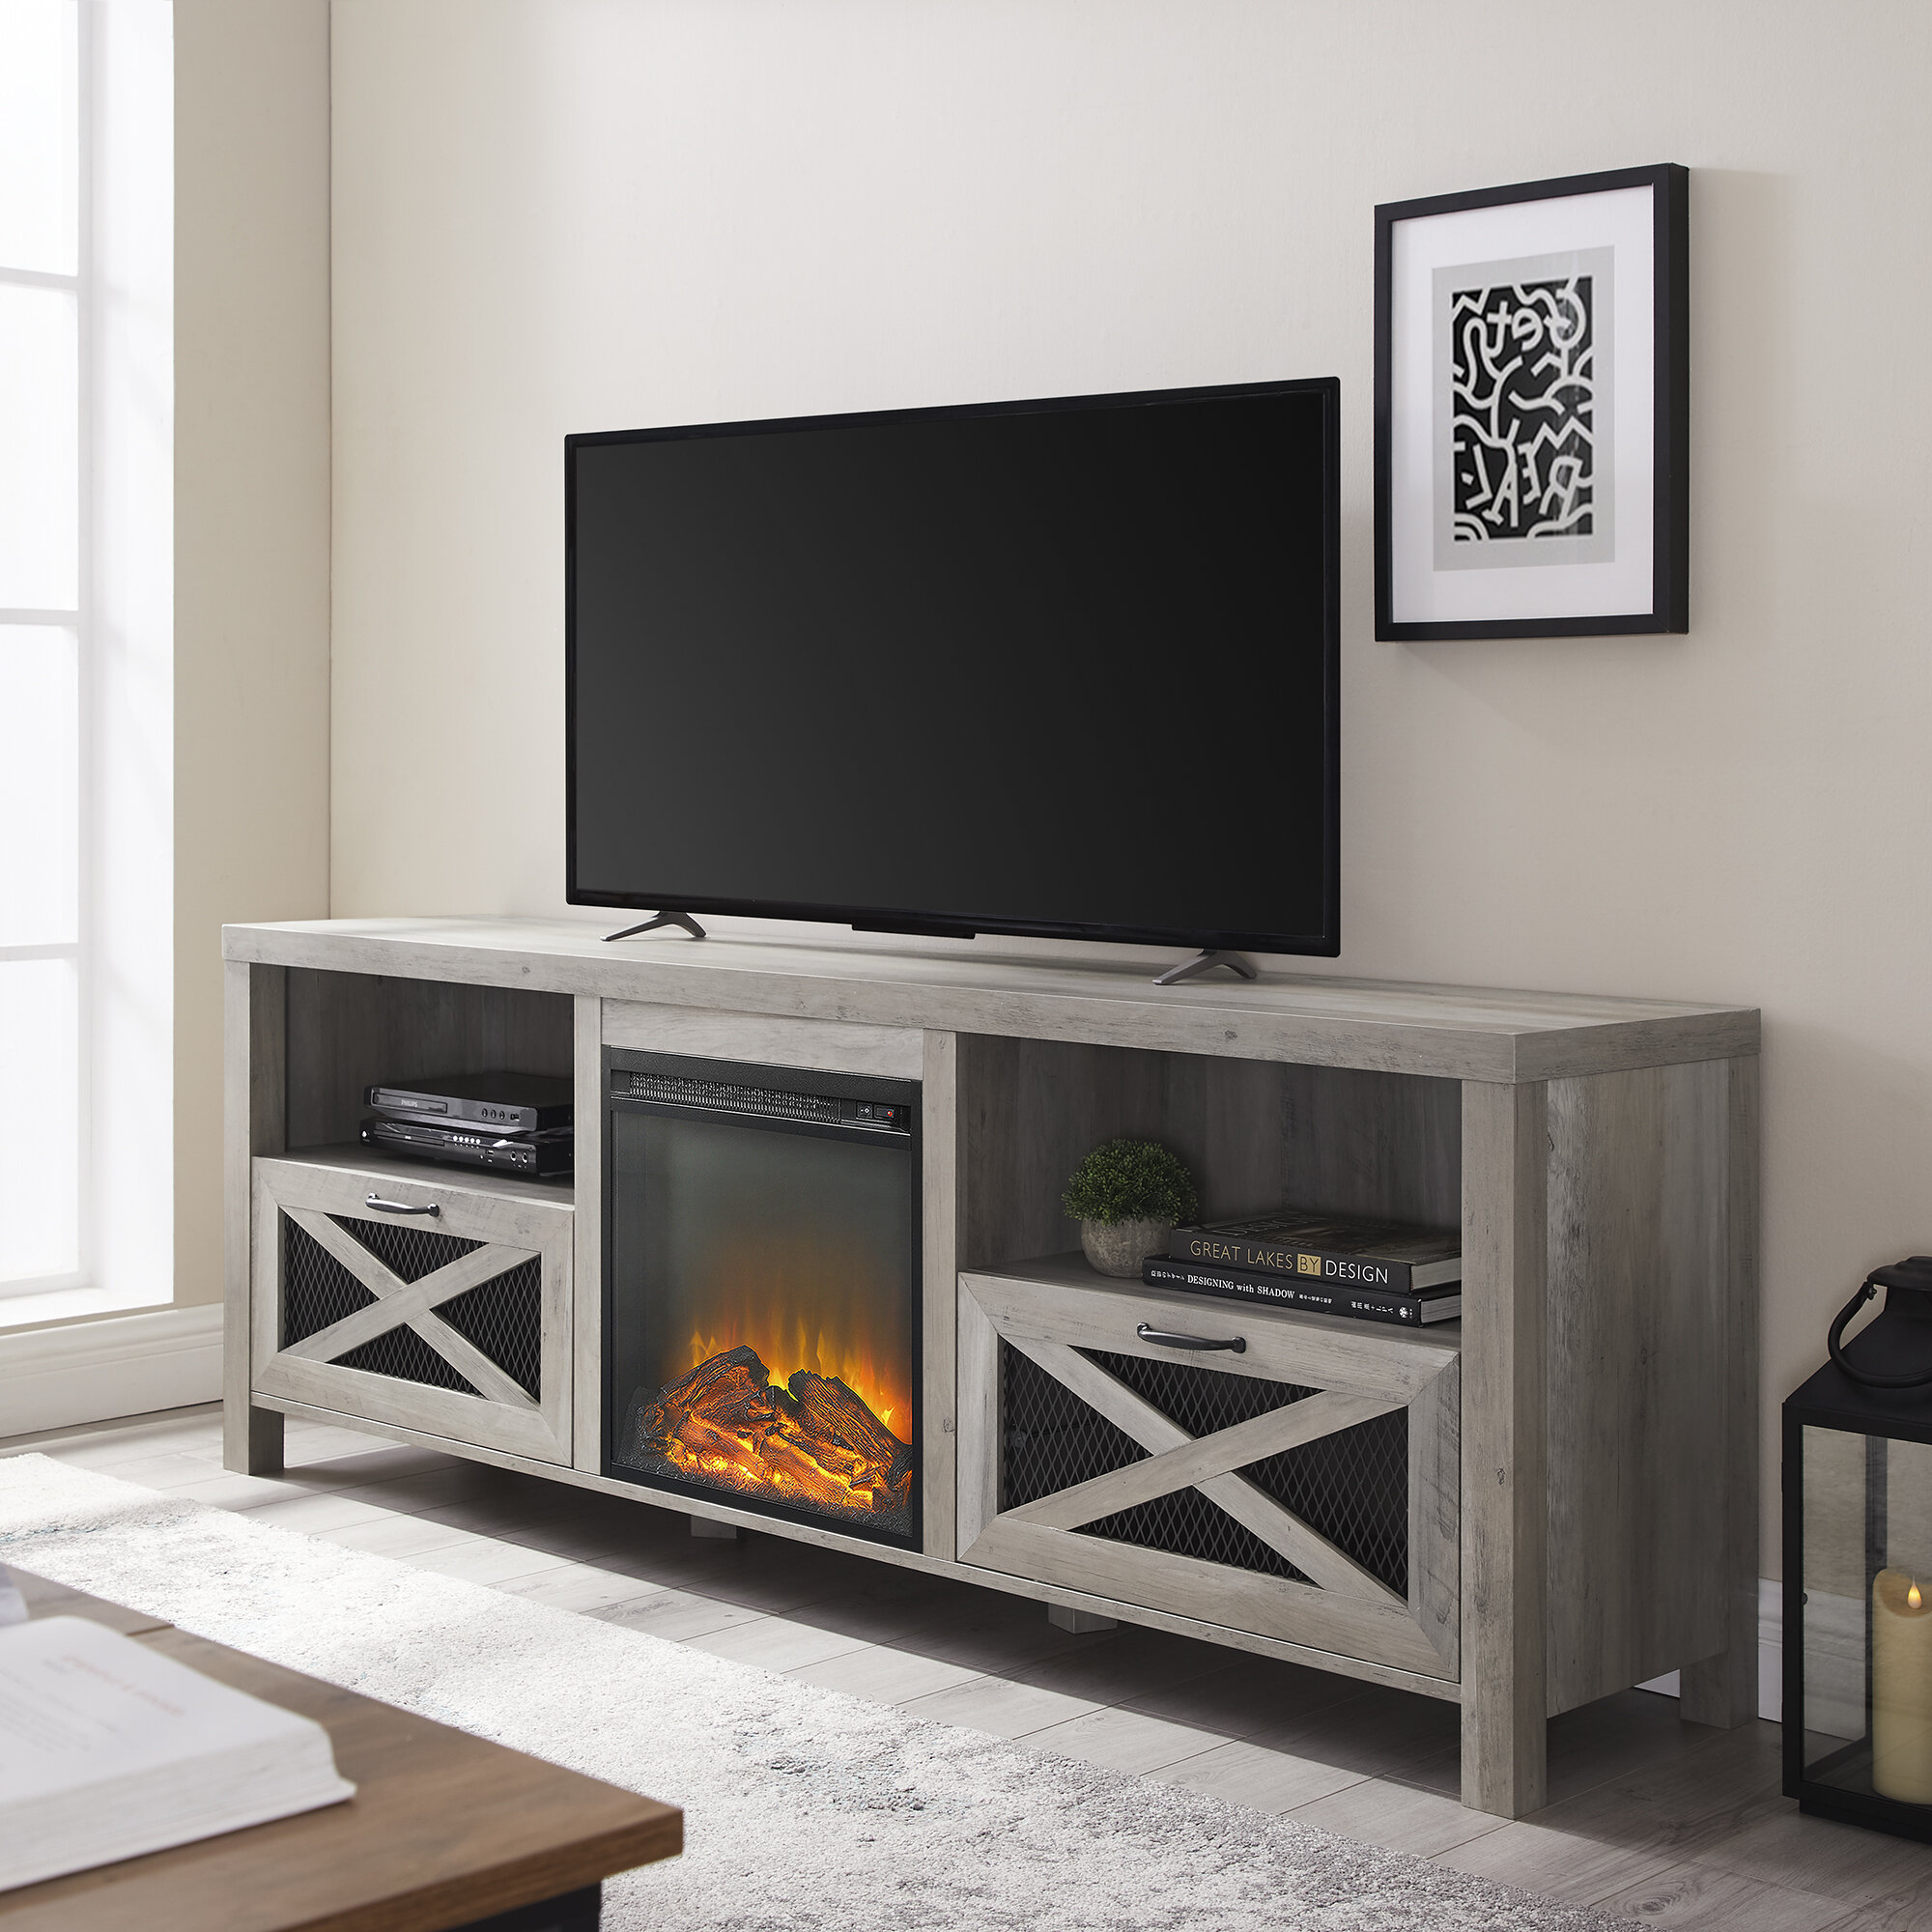 "55 Inch Tv Stand with Fireplace Unique Tansey Tv Stand for Tvs Up to 70"" with Electric Fireplace"